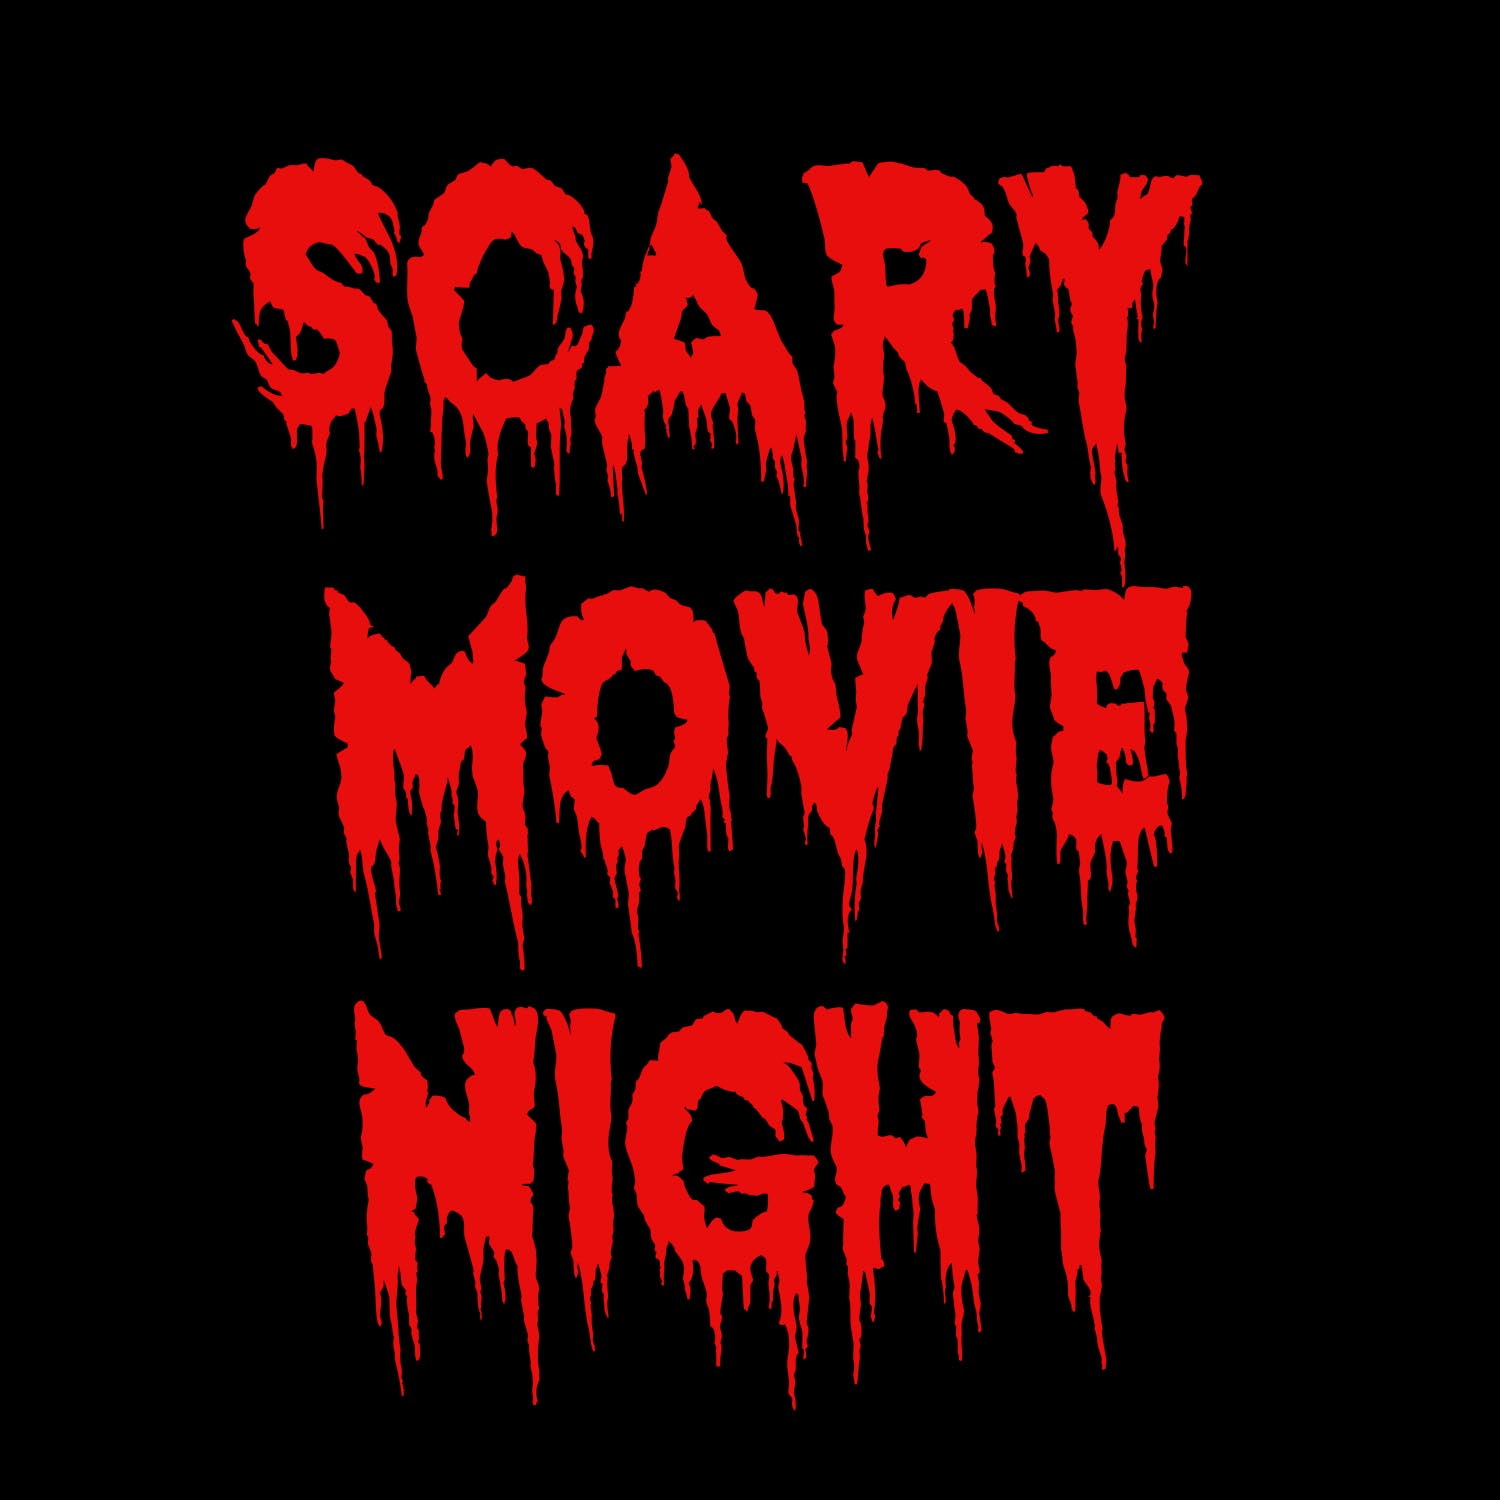 2018 - Scary Movie Night